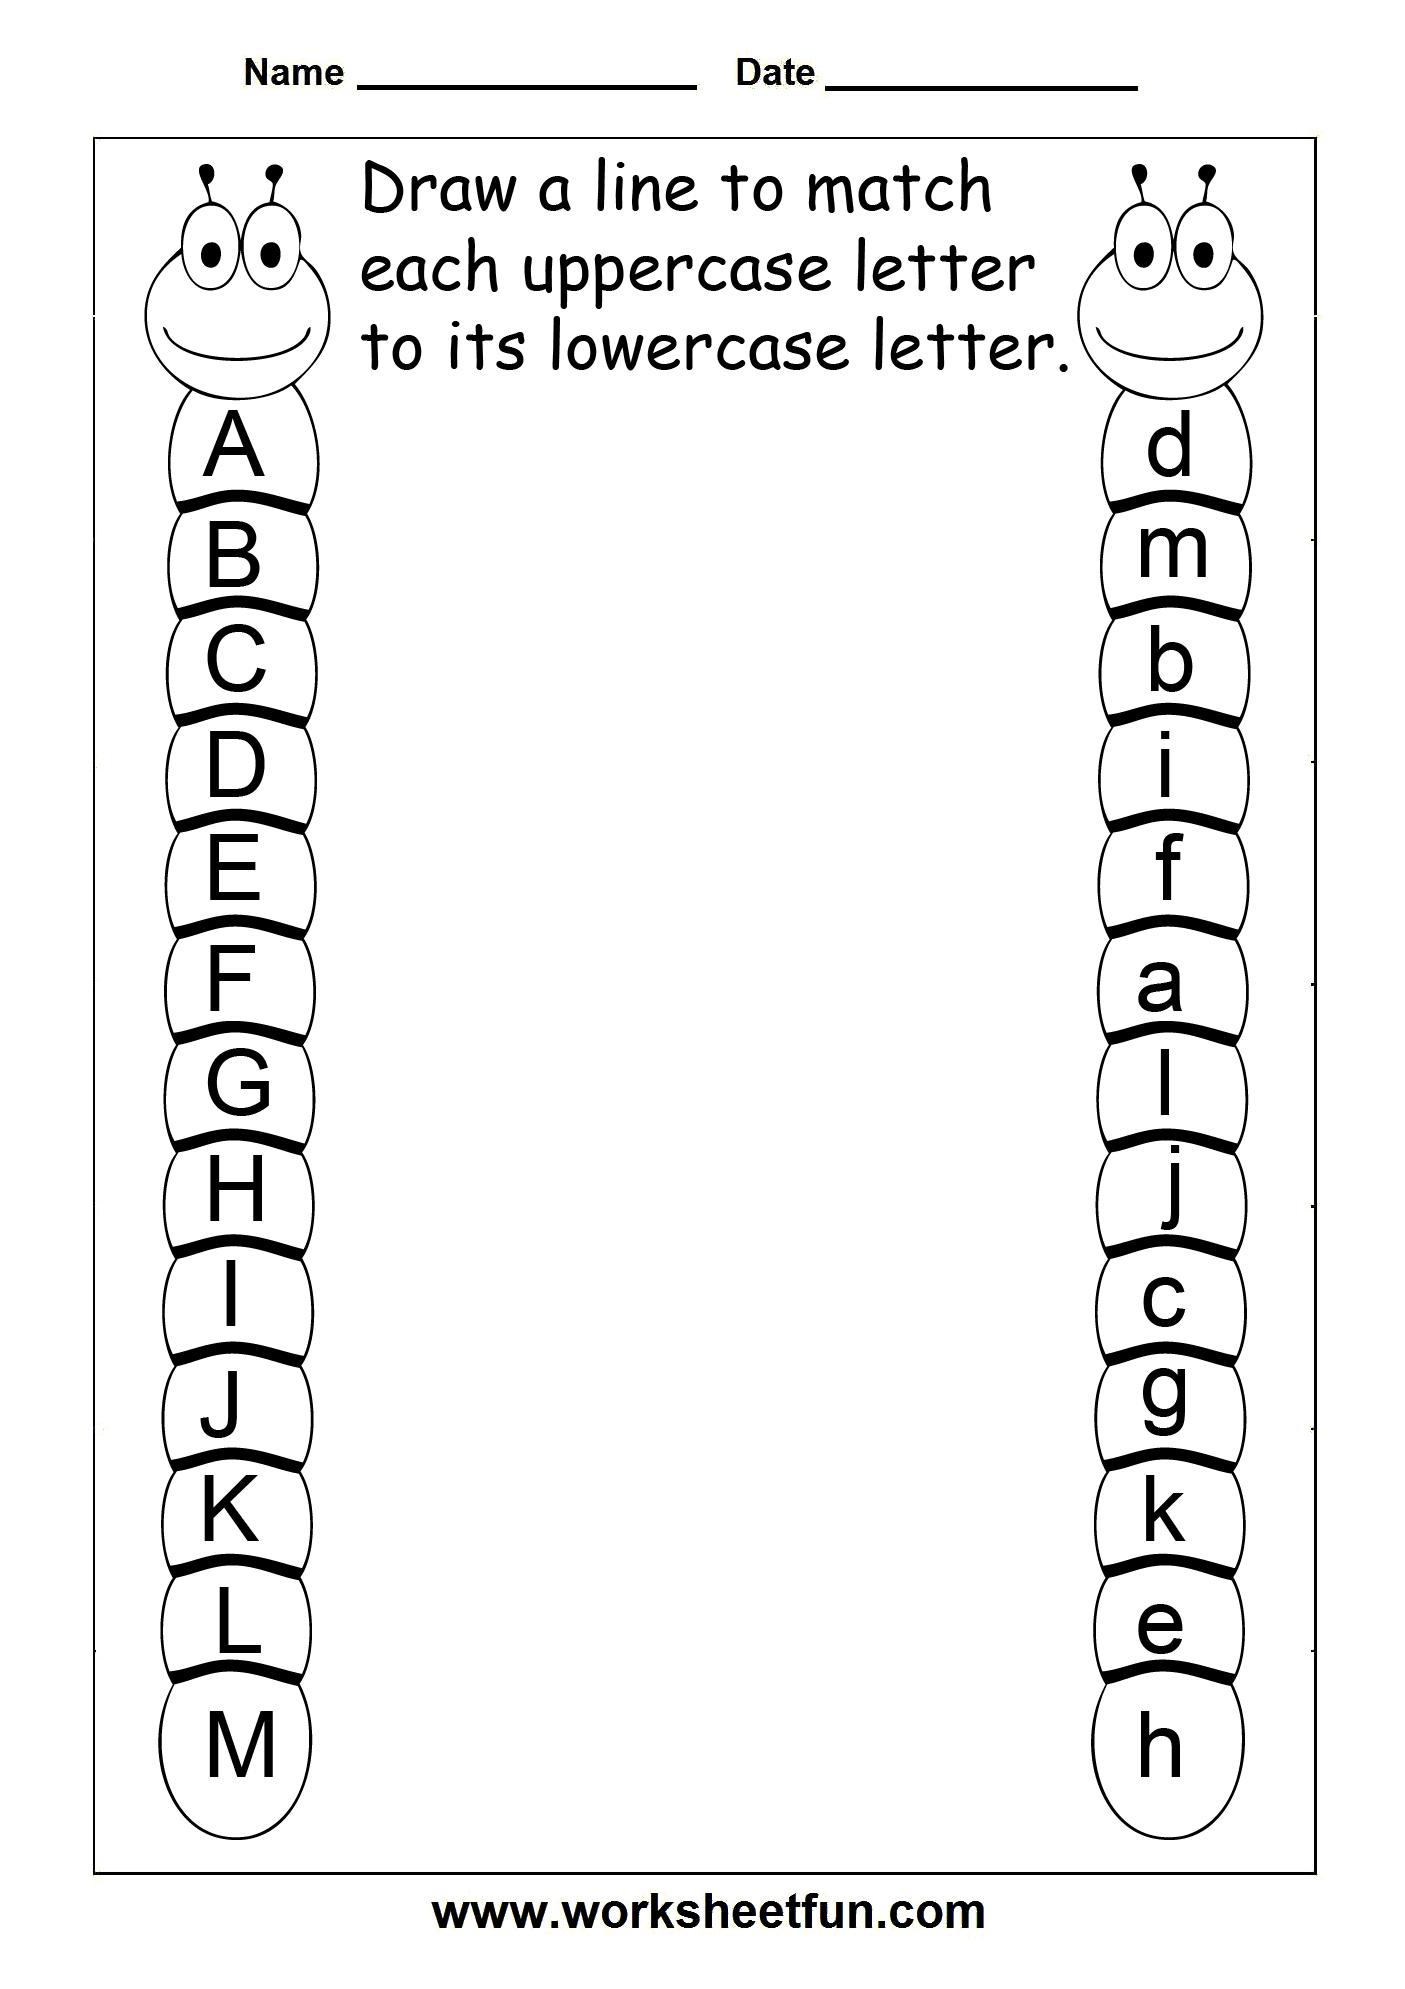 Weirdmailus  Gorgeous  Images About Work Worksheet On Pinterest  Hidden Pictures  With Marvelous  Images About Work Worksheet On Pinterest  Hidden Pictures Color By Numbers And Puzzles With Astonishing Special Triangle Worksheet Also Array Worksheets For Nd Grade In Addition Capacity Worksheets For Kindergarten And Language Arts Th Grade Worksheets As Well As Math Equations Worksheet Additionally More Or Less Worksheet From Pinterestcom With Weirdmailus  Marvelous  Images About Work Worksheet On Pinterest  Hidden Pictures  With Astonishing  Images About Work Worksheet On Pinterest  Hidden Pictures Color By Numbers And Puzzles And Gorgeous Special Triangle Worksheet Also Array Worksheets For Nd Grade In Addition Capacity Worksheets For Kindergarten From Pinterestcom